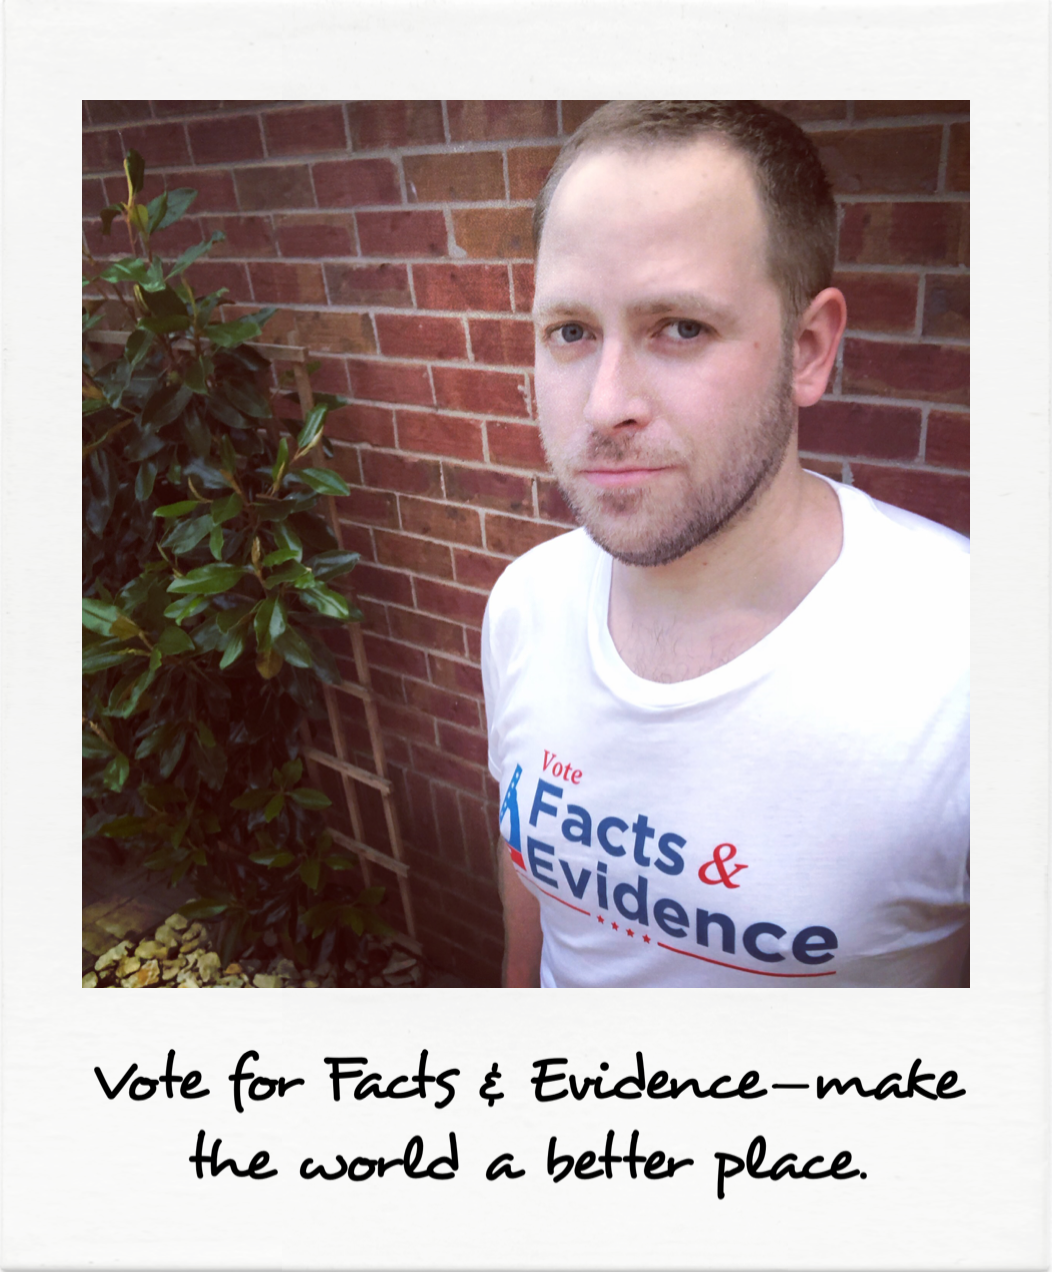 Vote for Facts and Evidence - make the world a better place